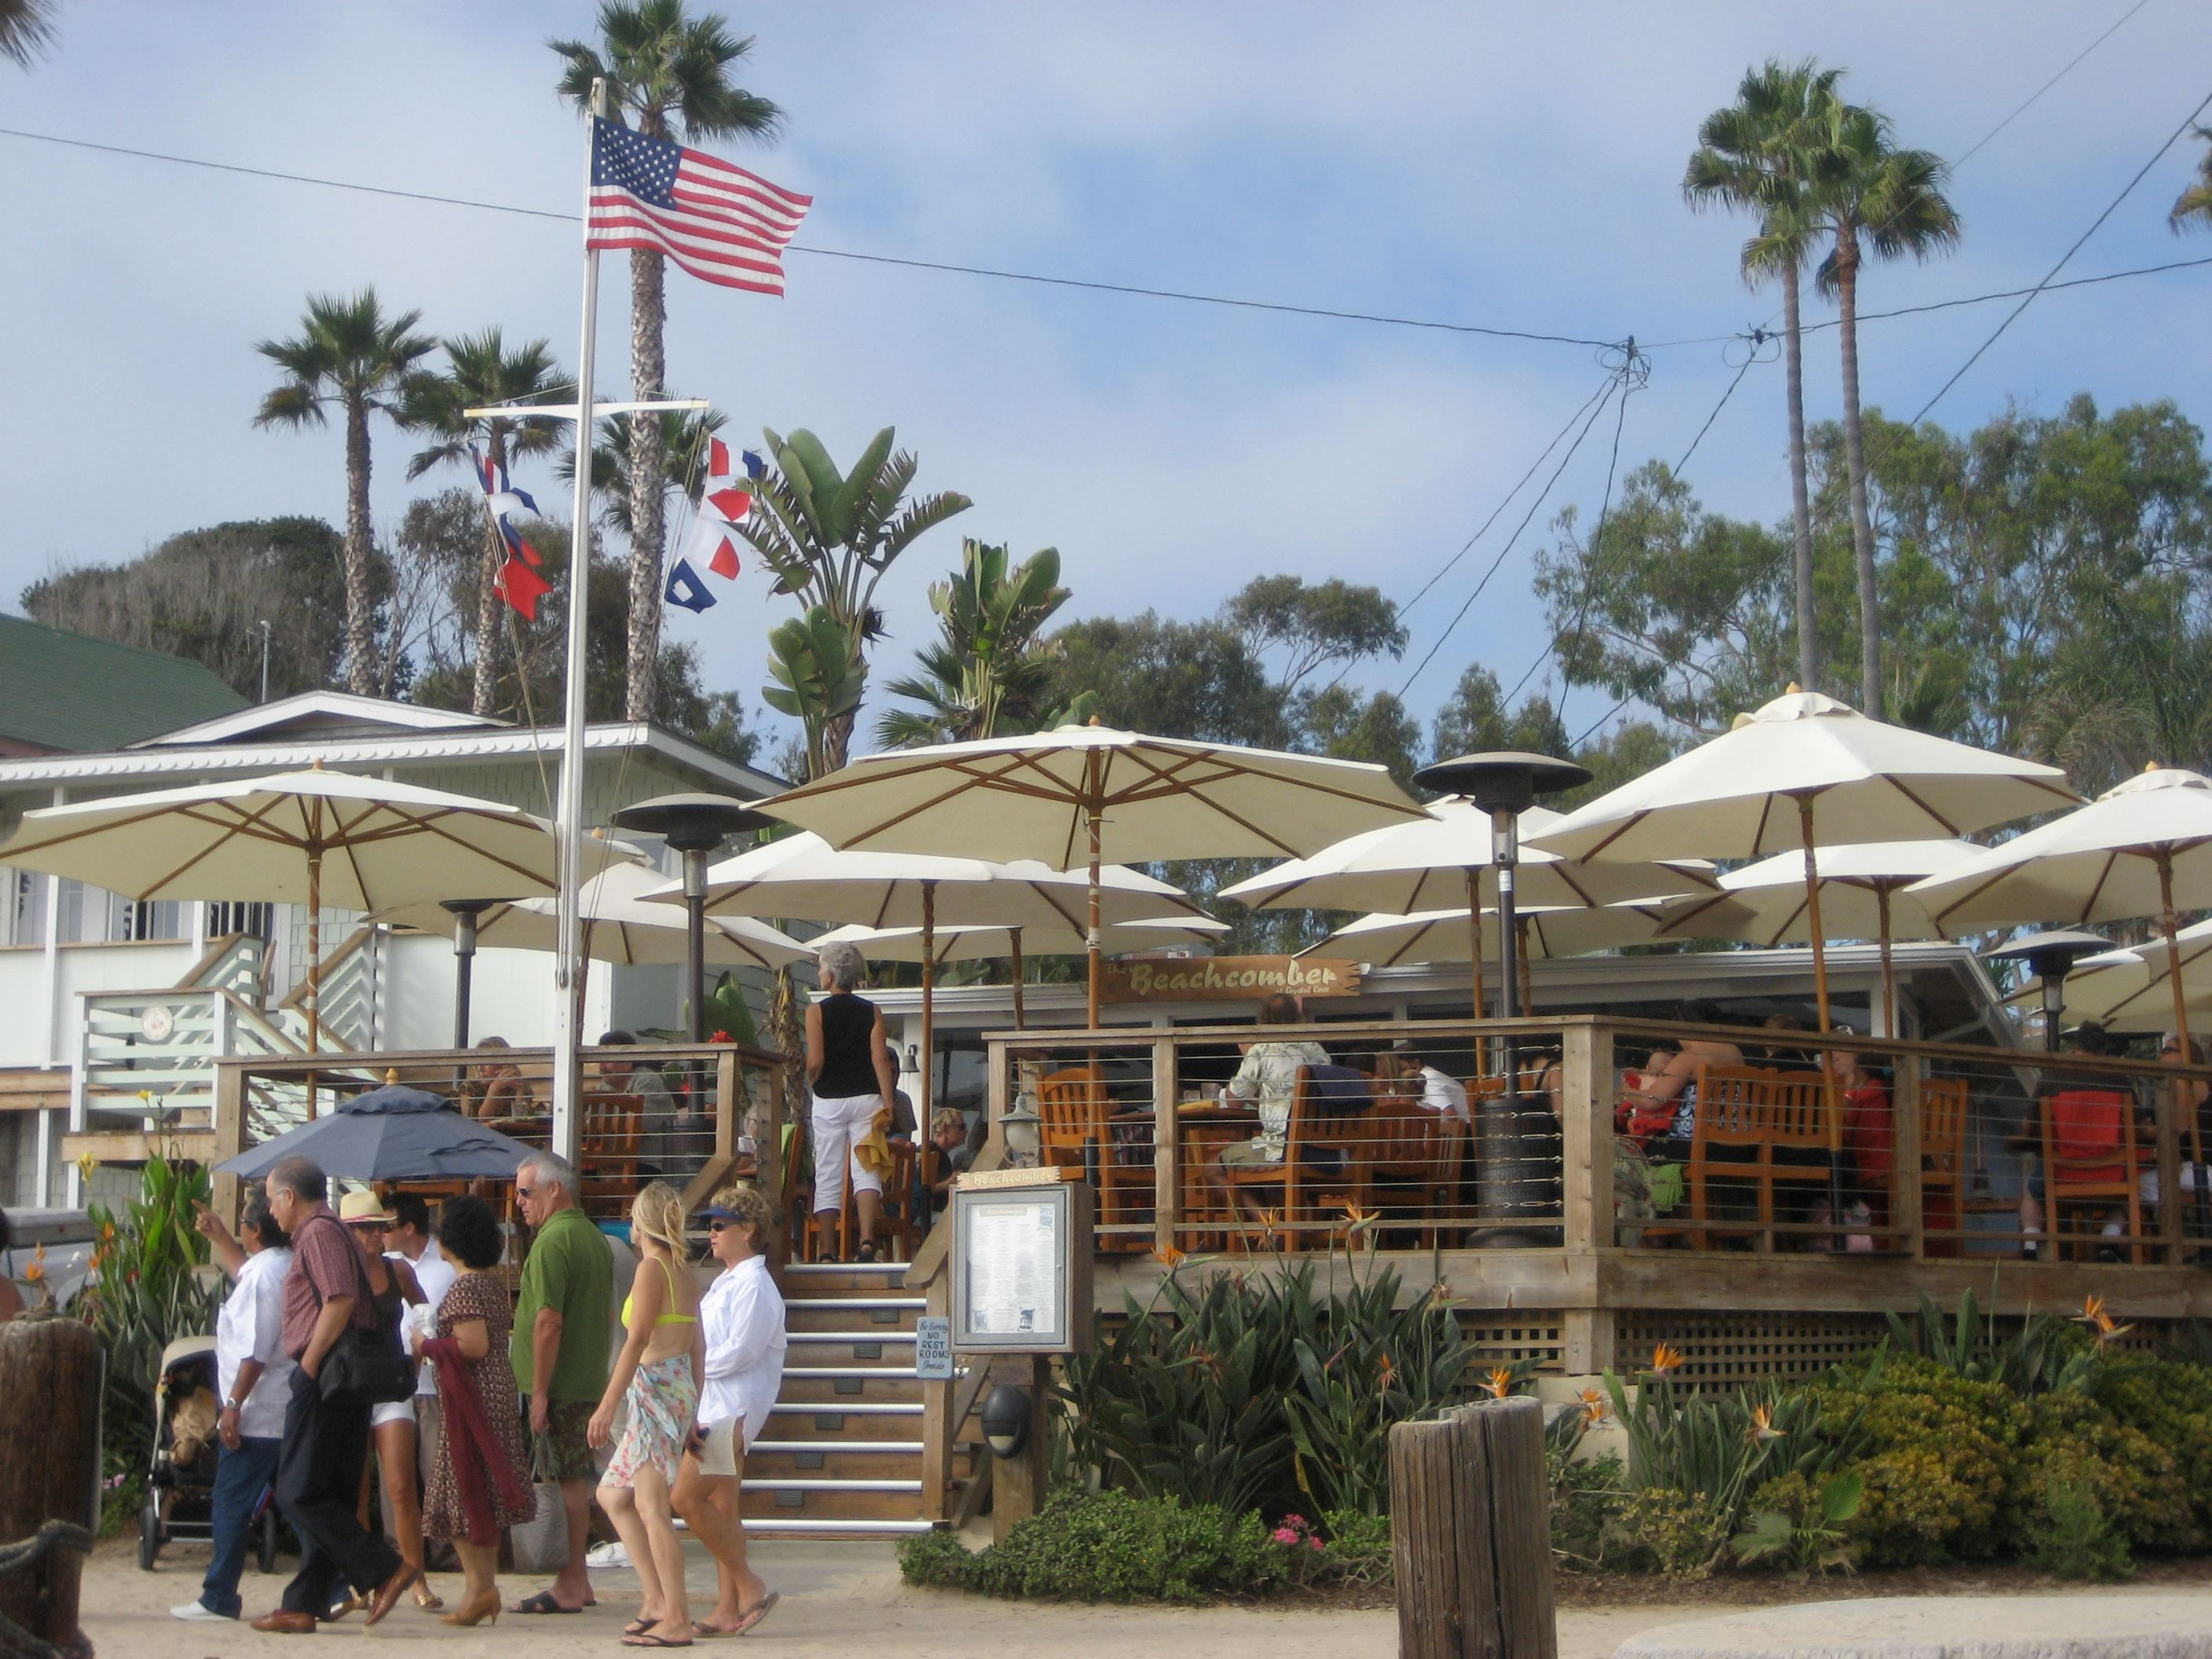 Beachcomber Café at Crystal Cove - 6